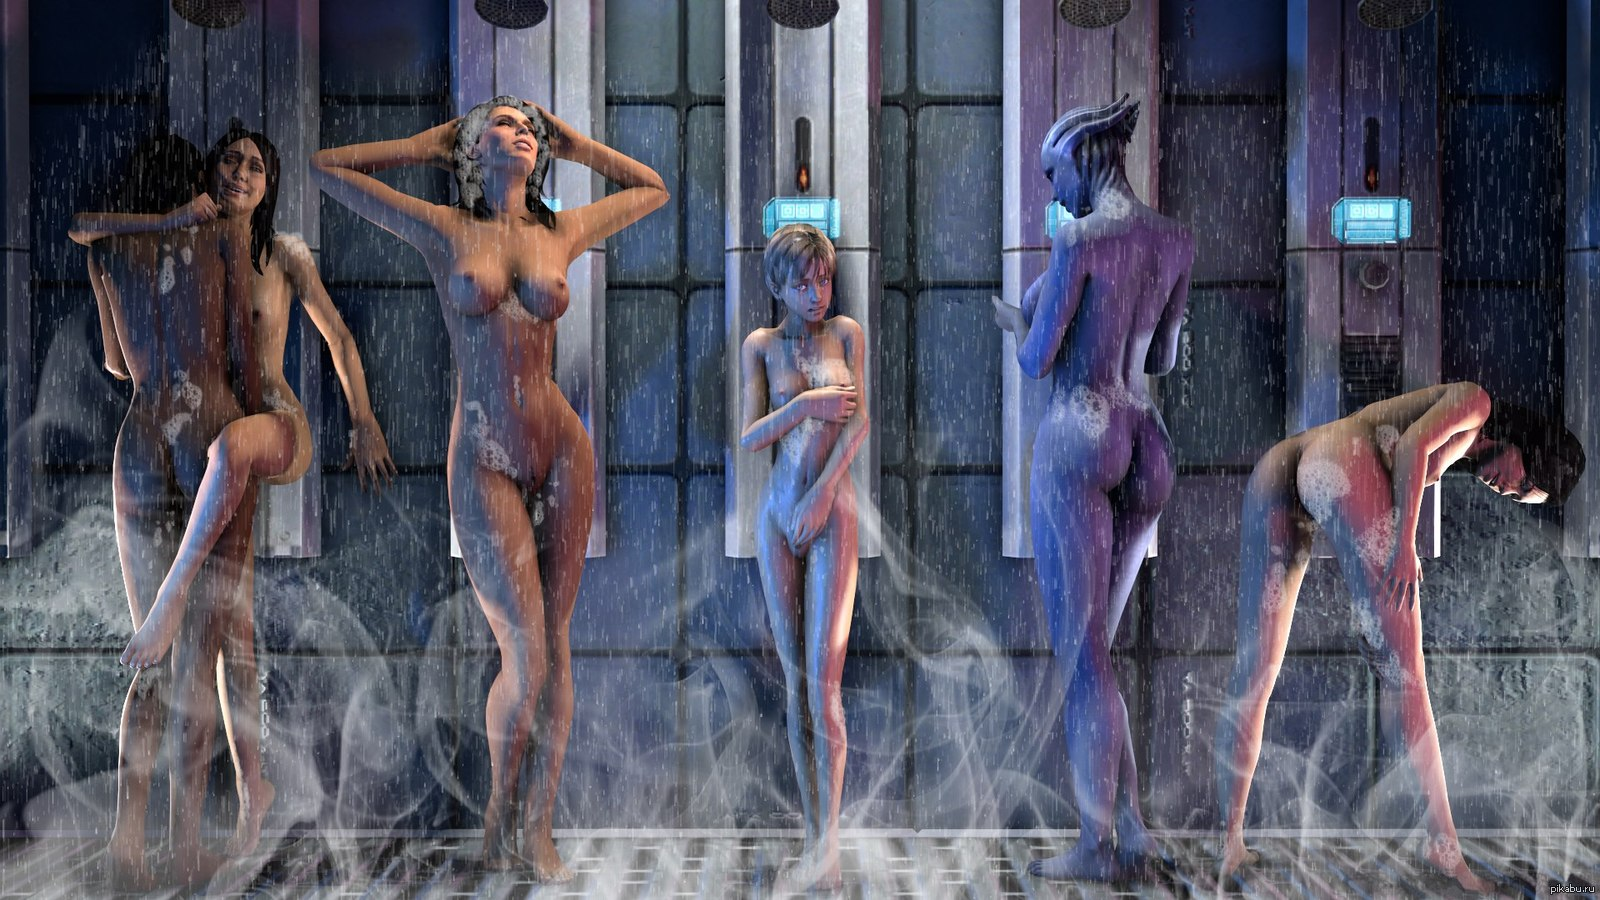 Mass effect nude art xxx photos